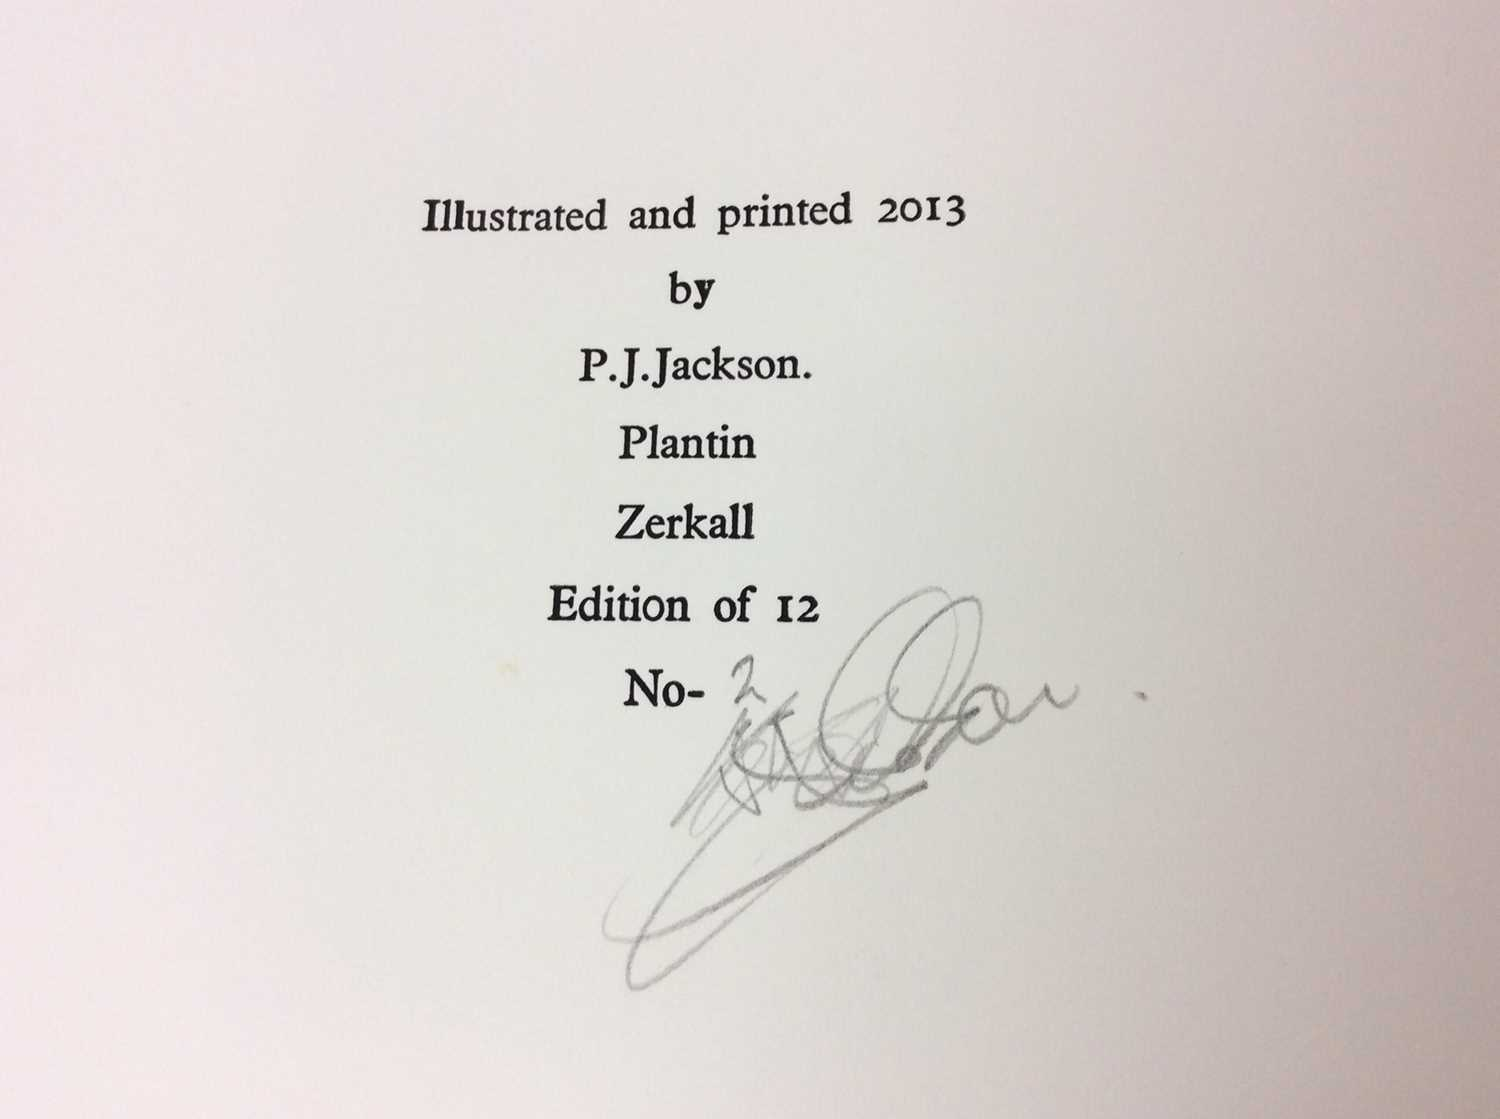 P. J. Jackson - three very limited edition private publications - Image 8 of 11